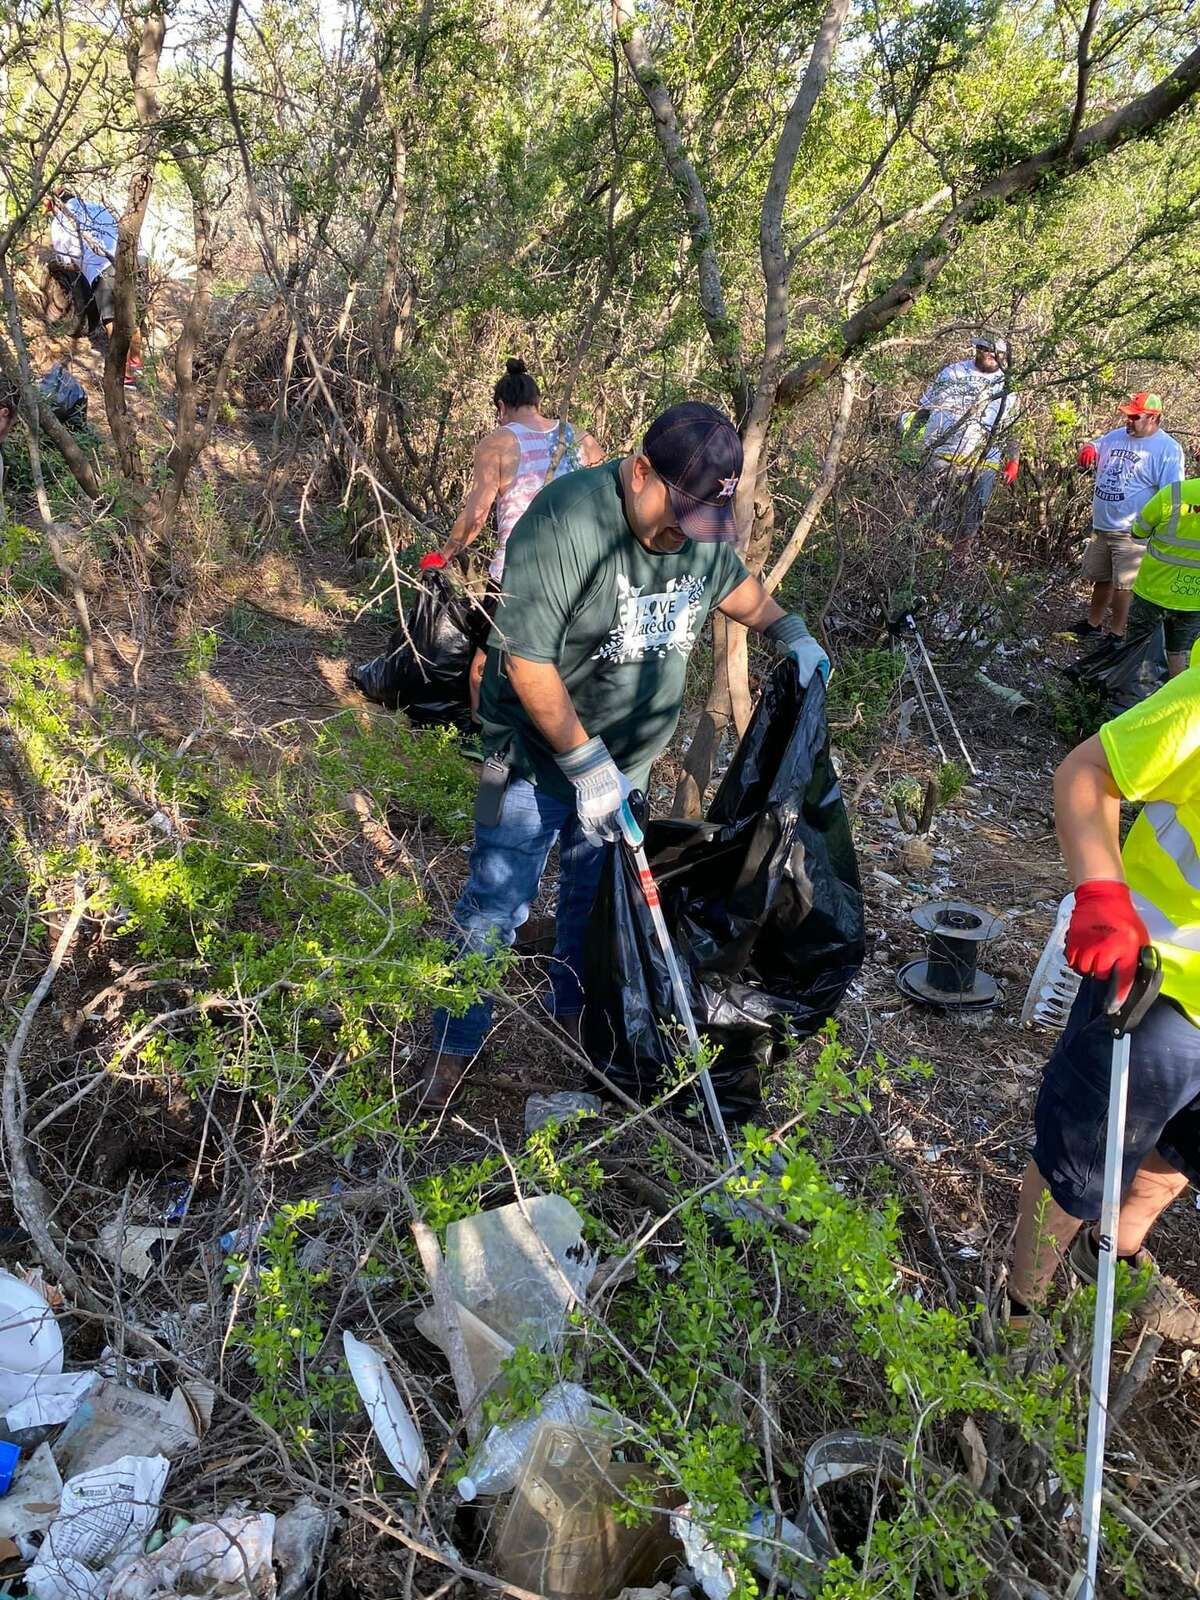 Community volunteers gathered at Robert Muller Park to pick up trash during a District VII clean-up event, Saturday, May 22, 2021.